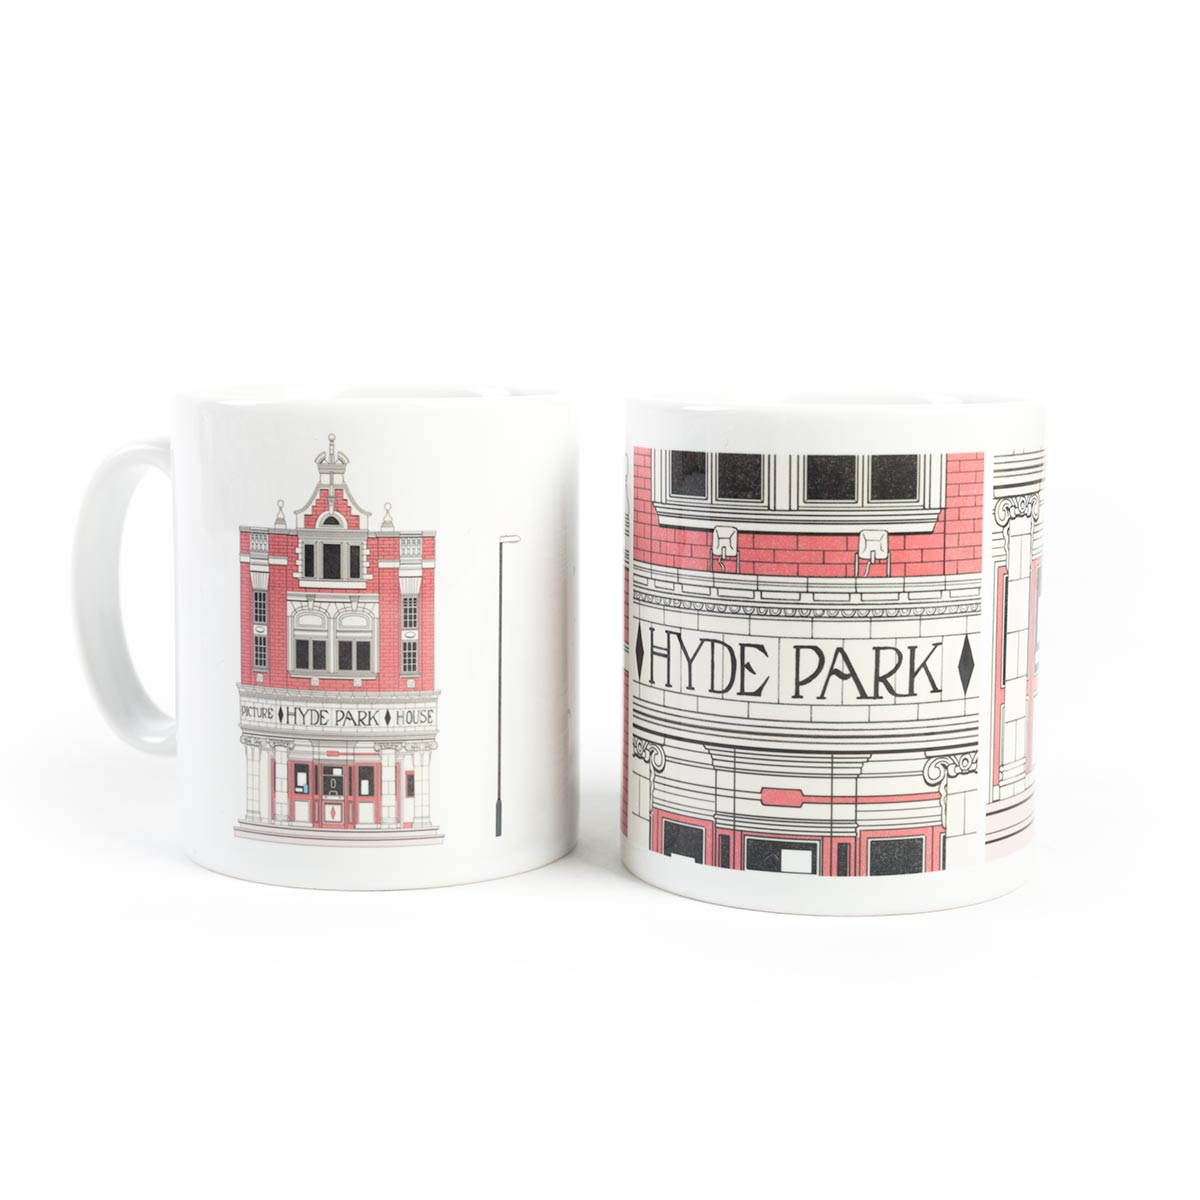 25 x Full Colour Mugs Deal